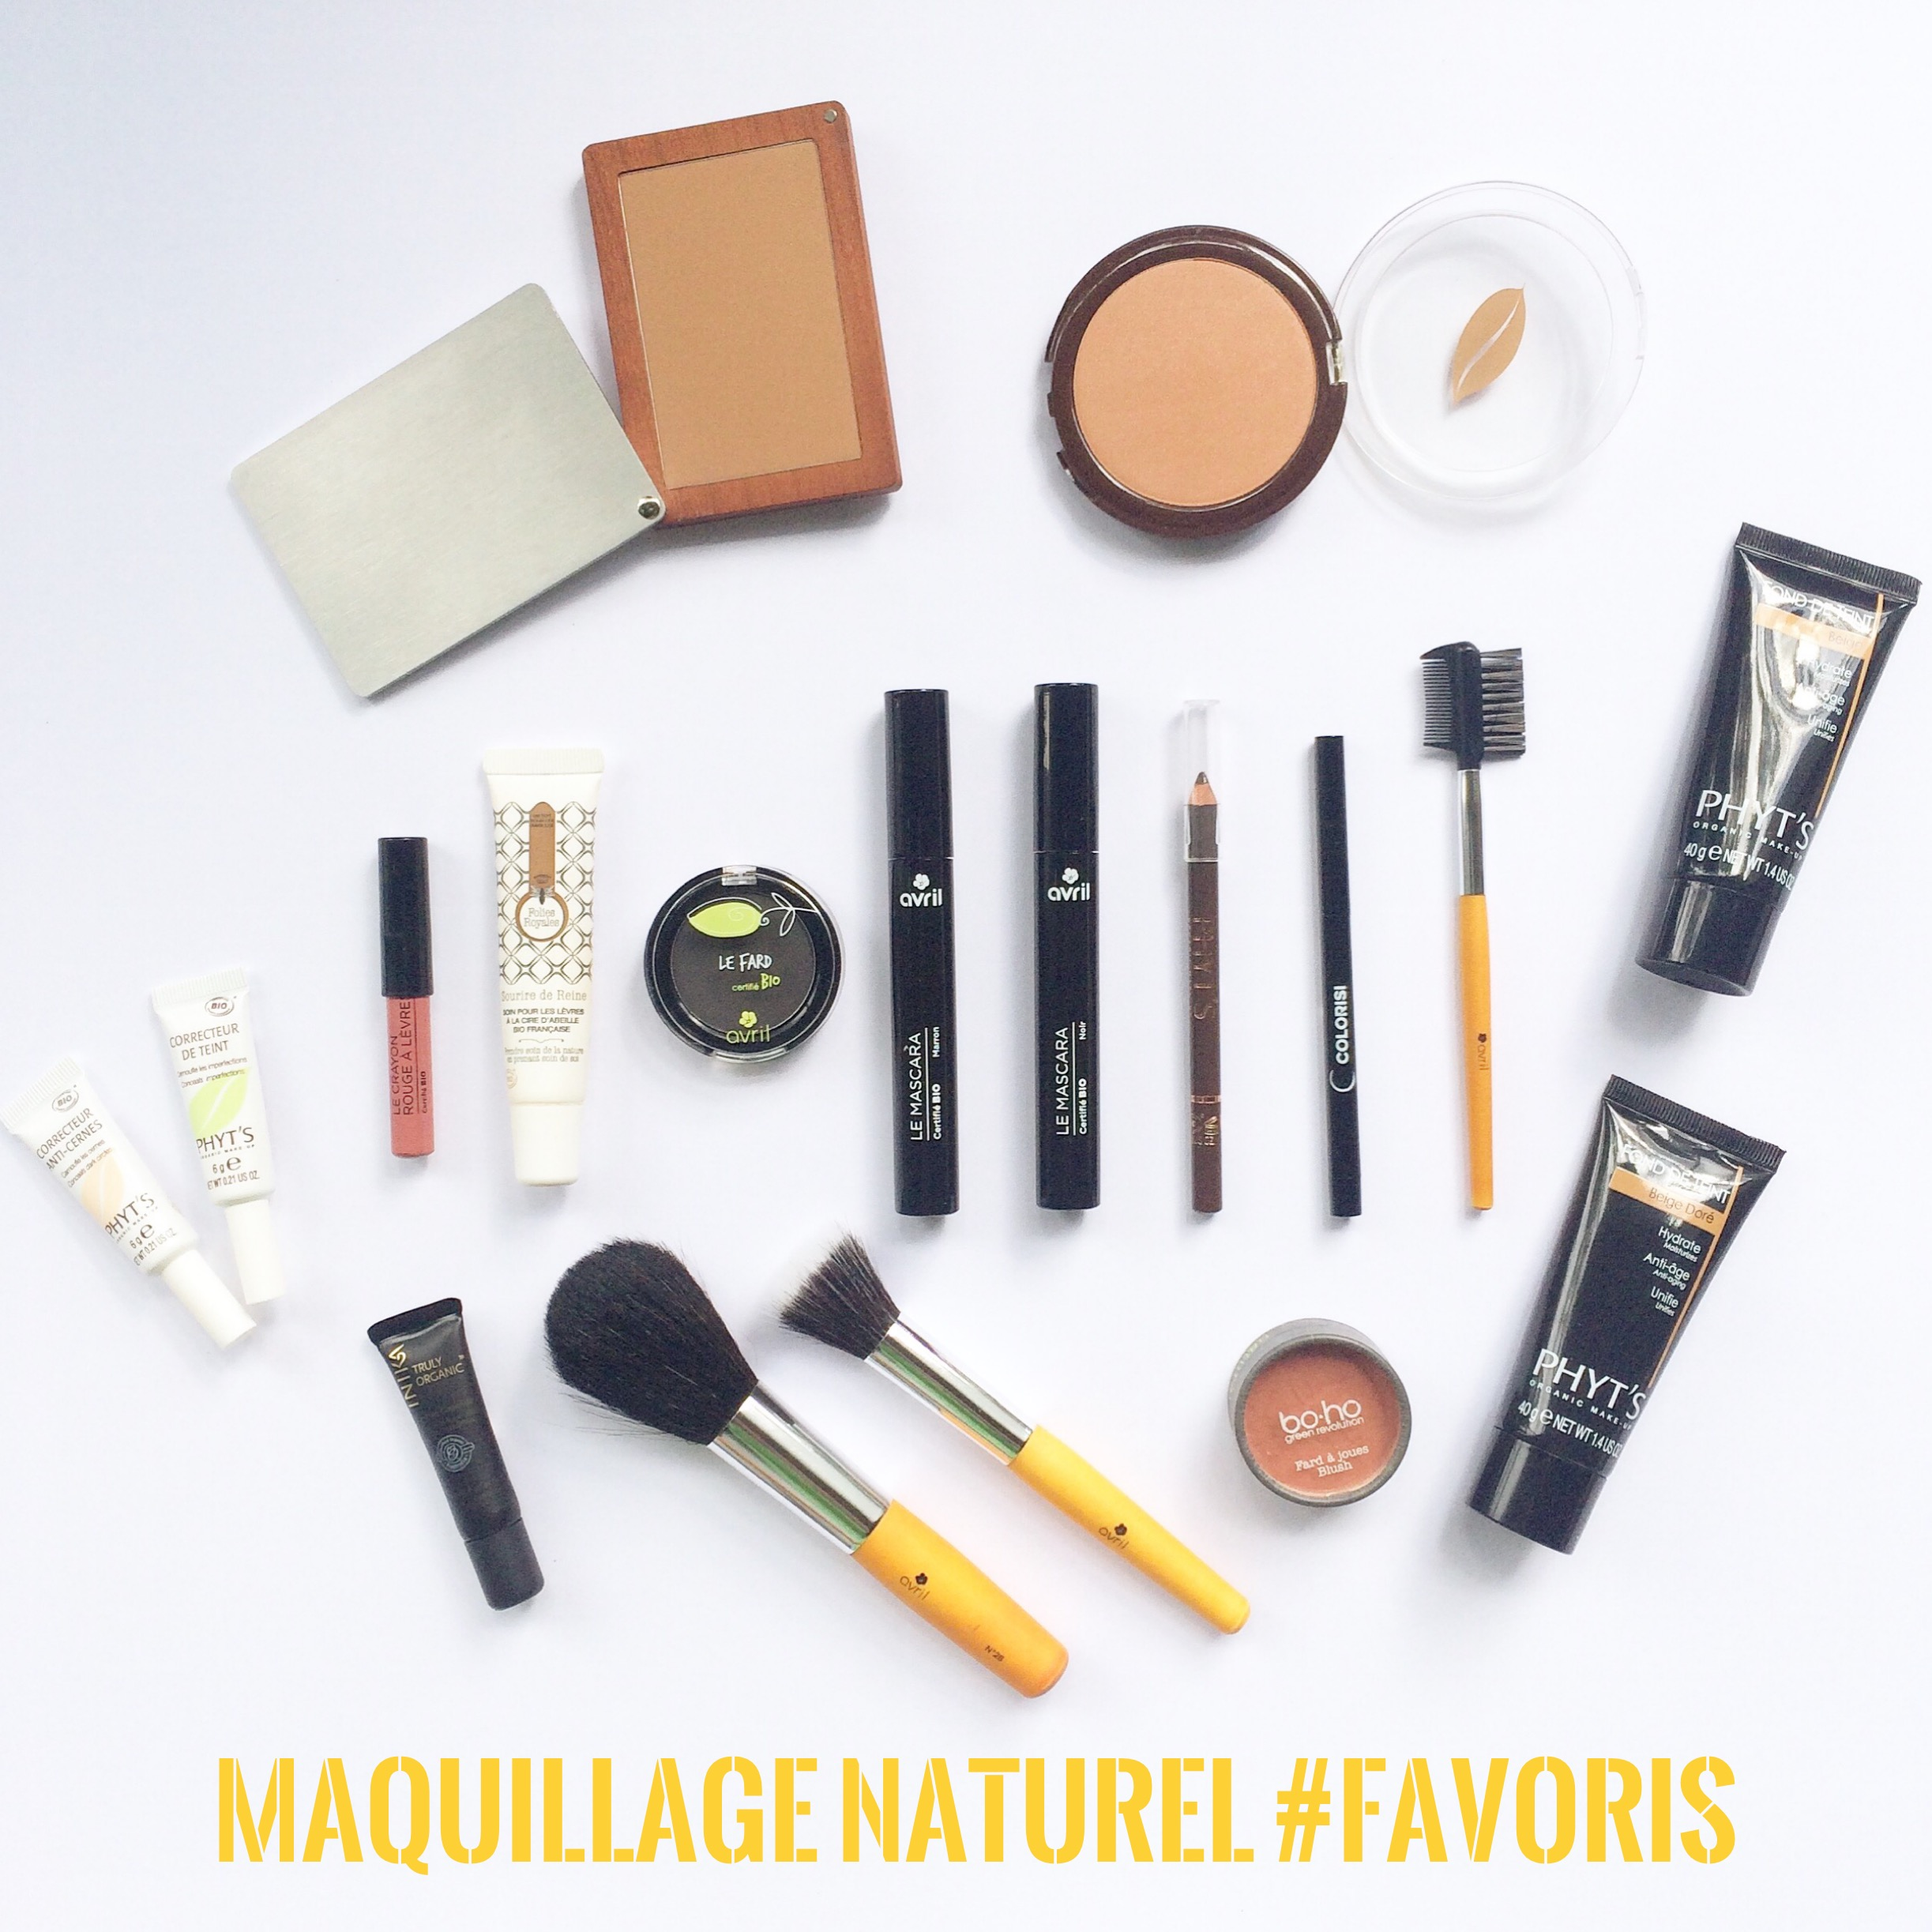 Maquillage naturel #FAVORIS